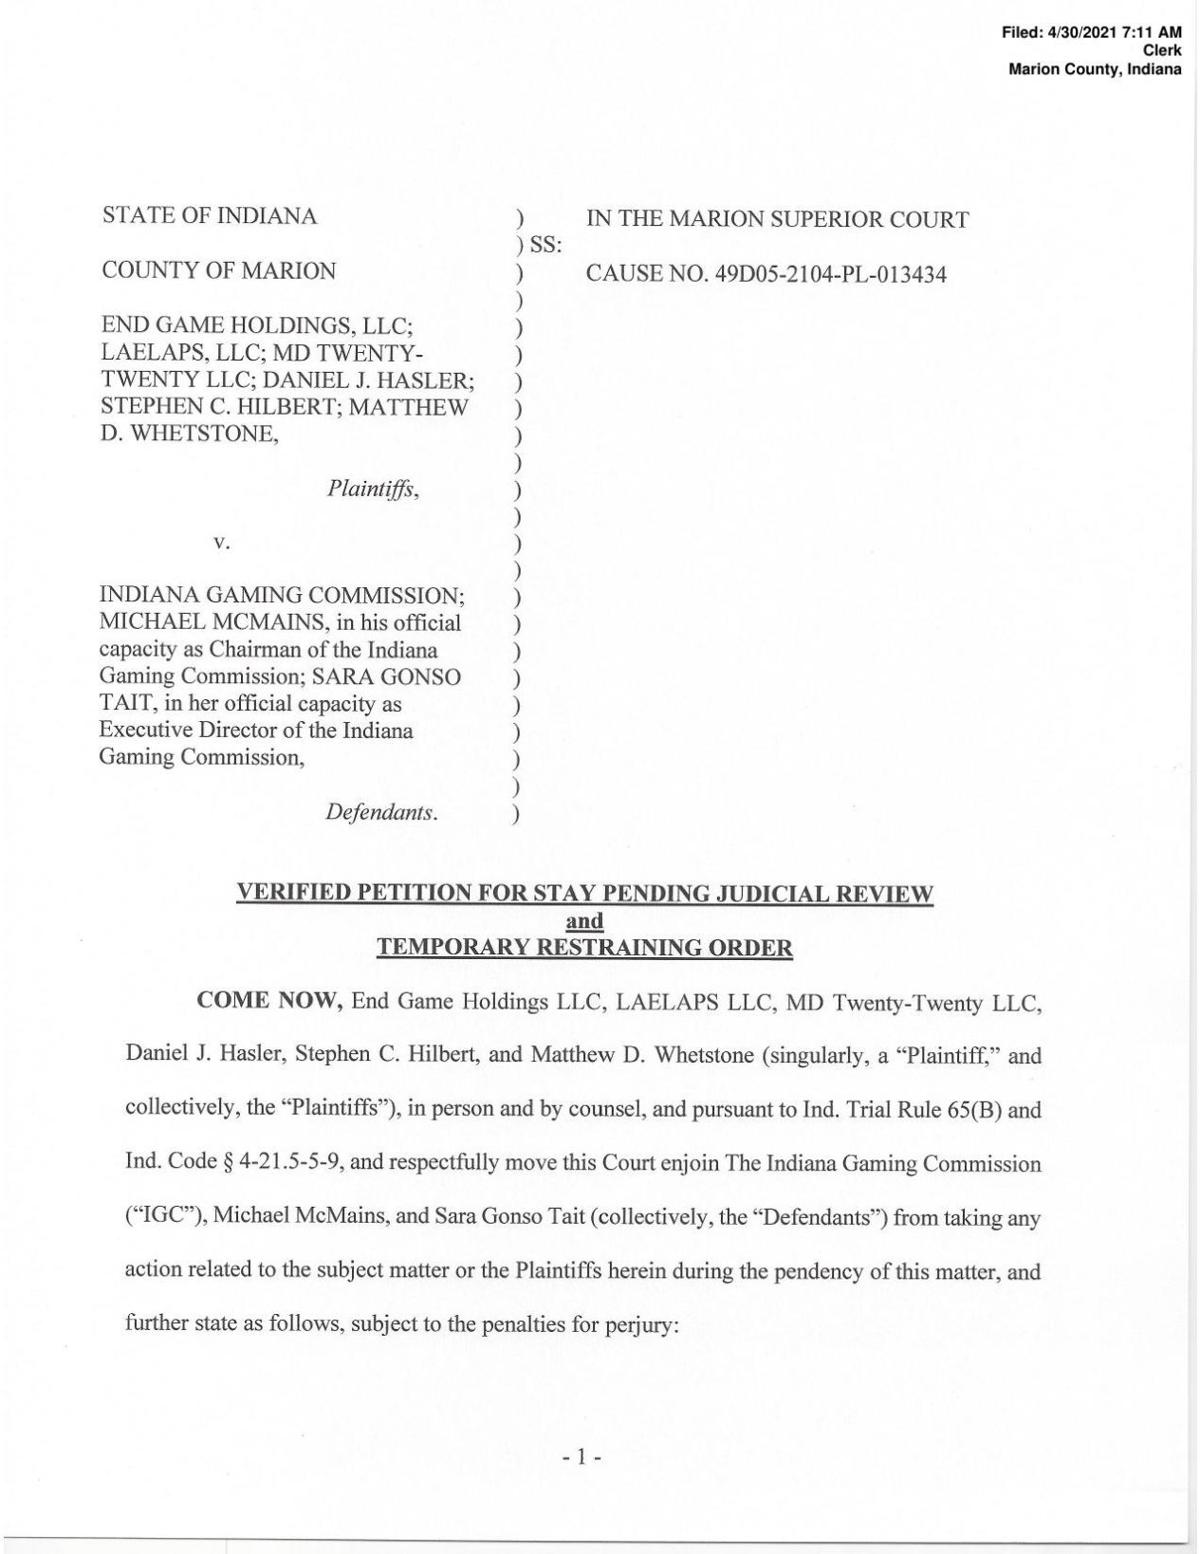 Petition for restraining order in End Game Holdings v. Indiana Gaming Commission